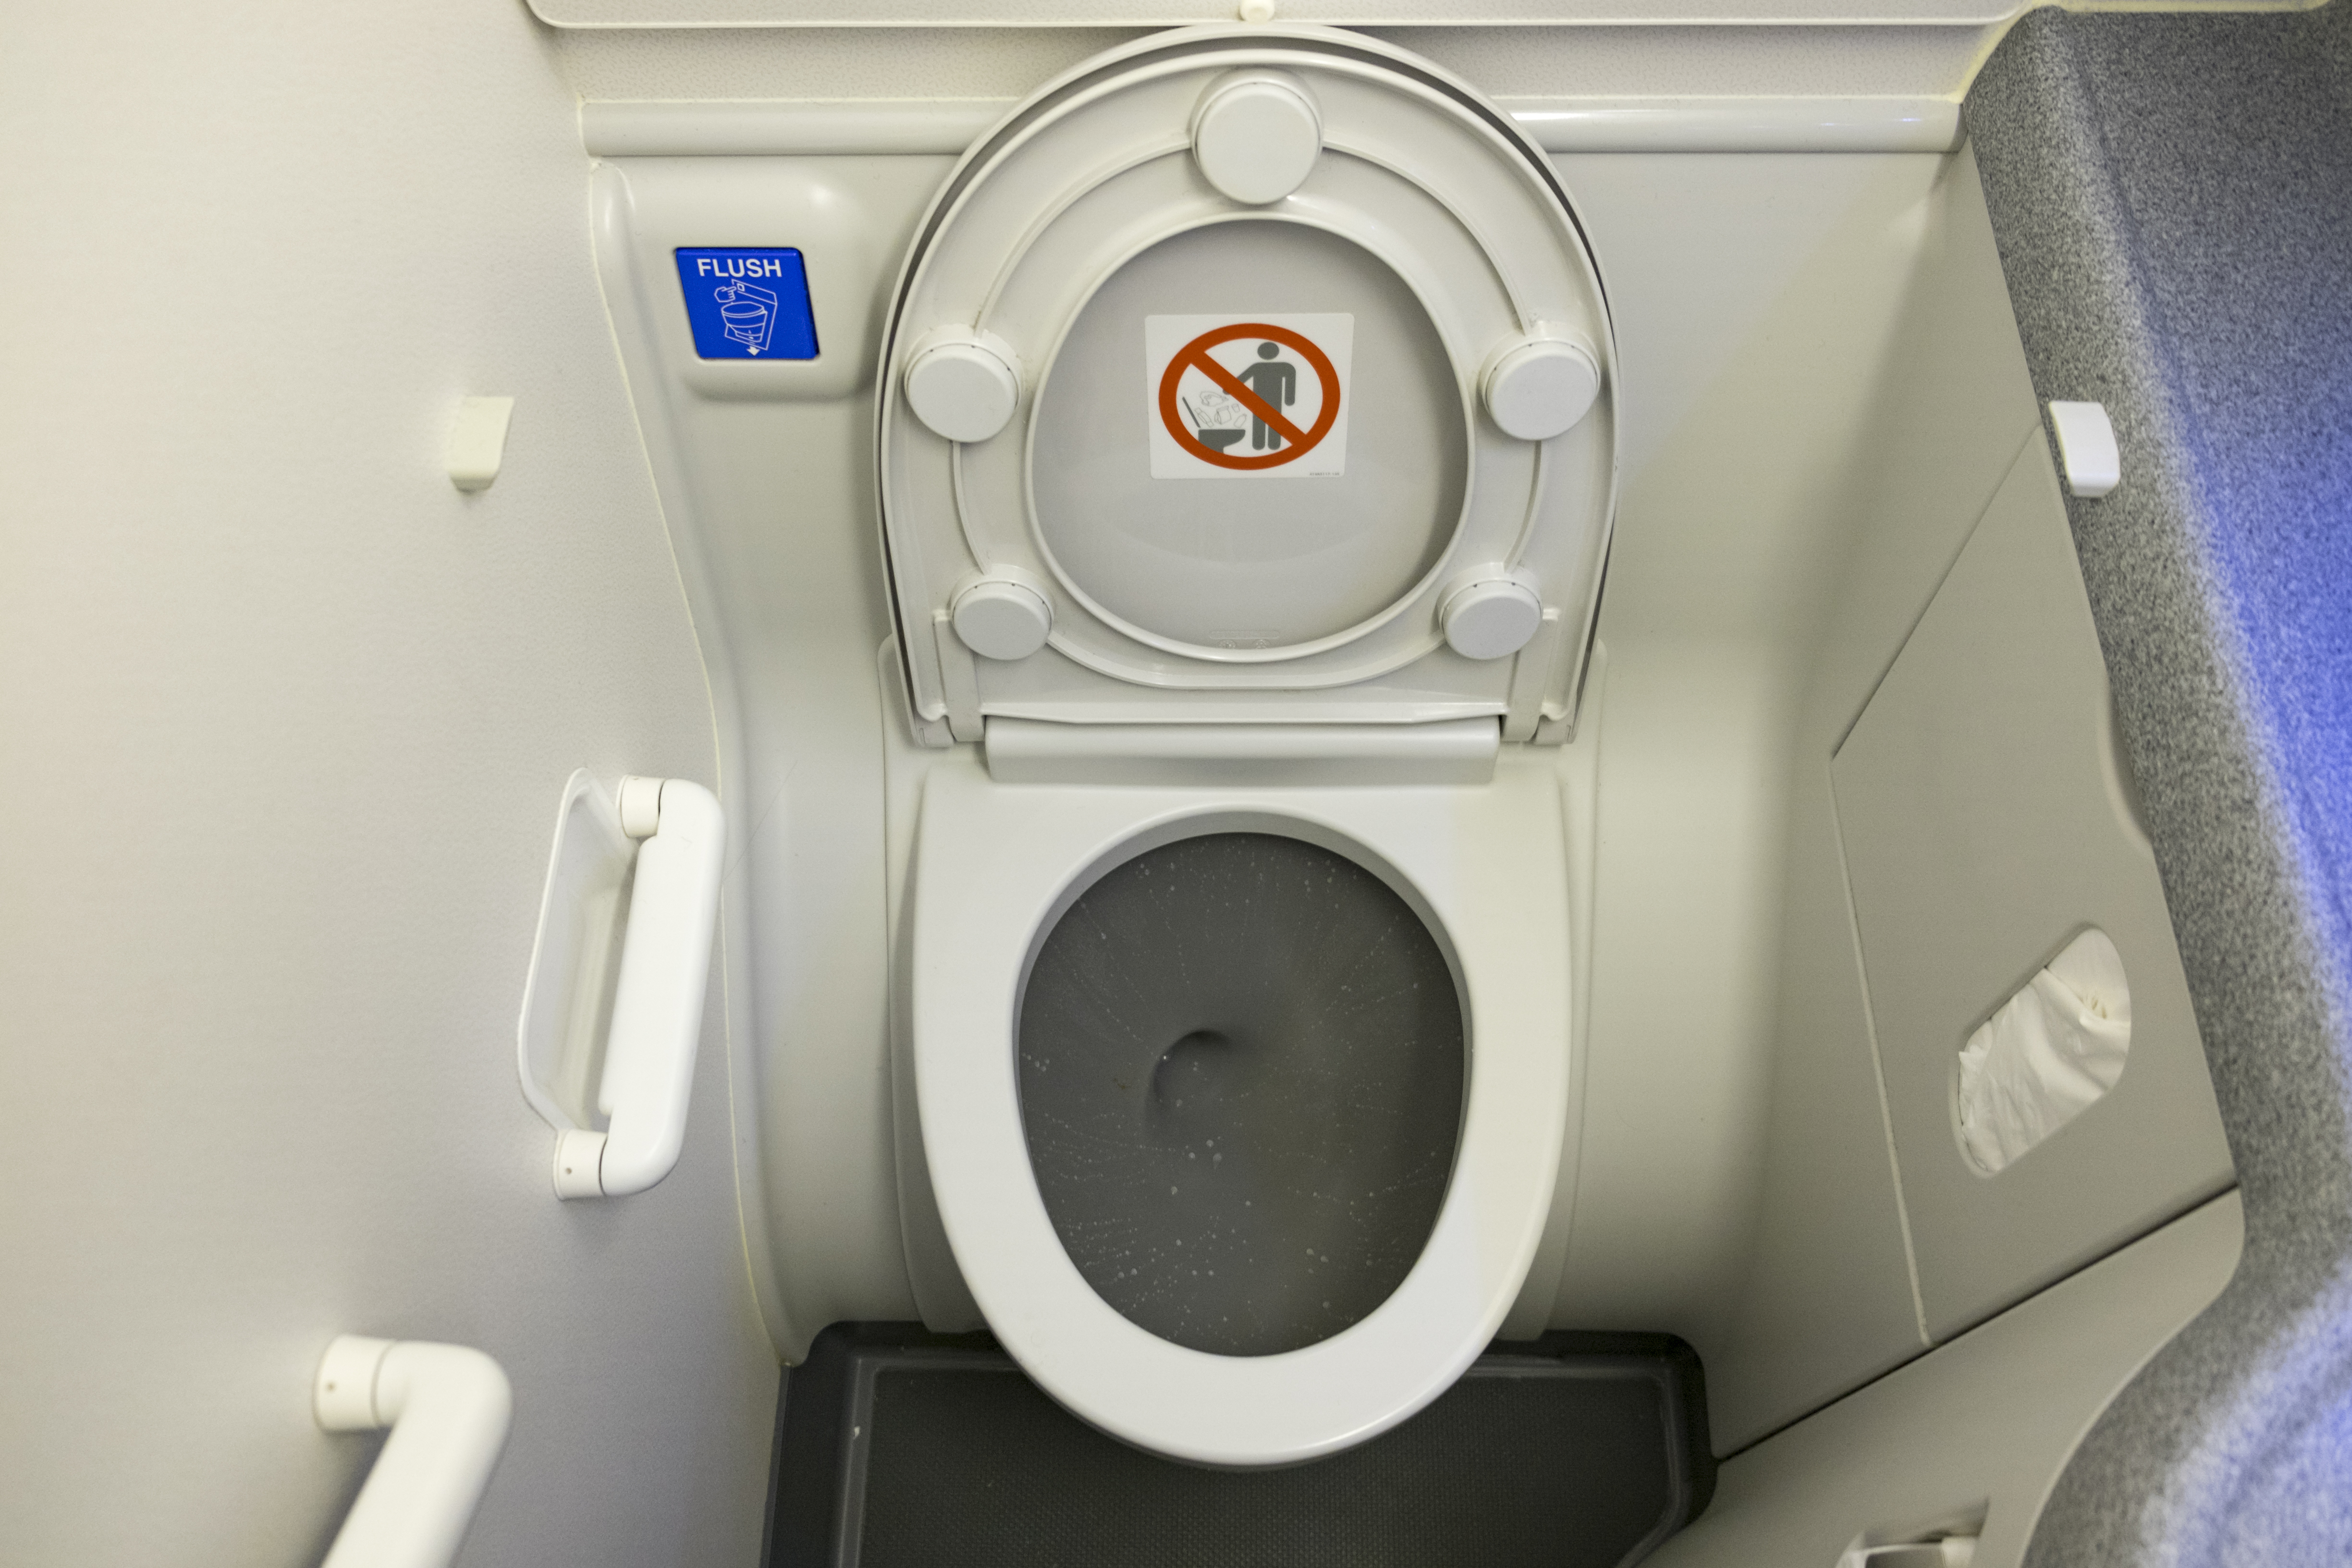 Toilet in airplane.